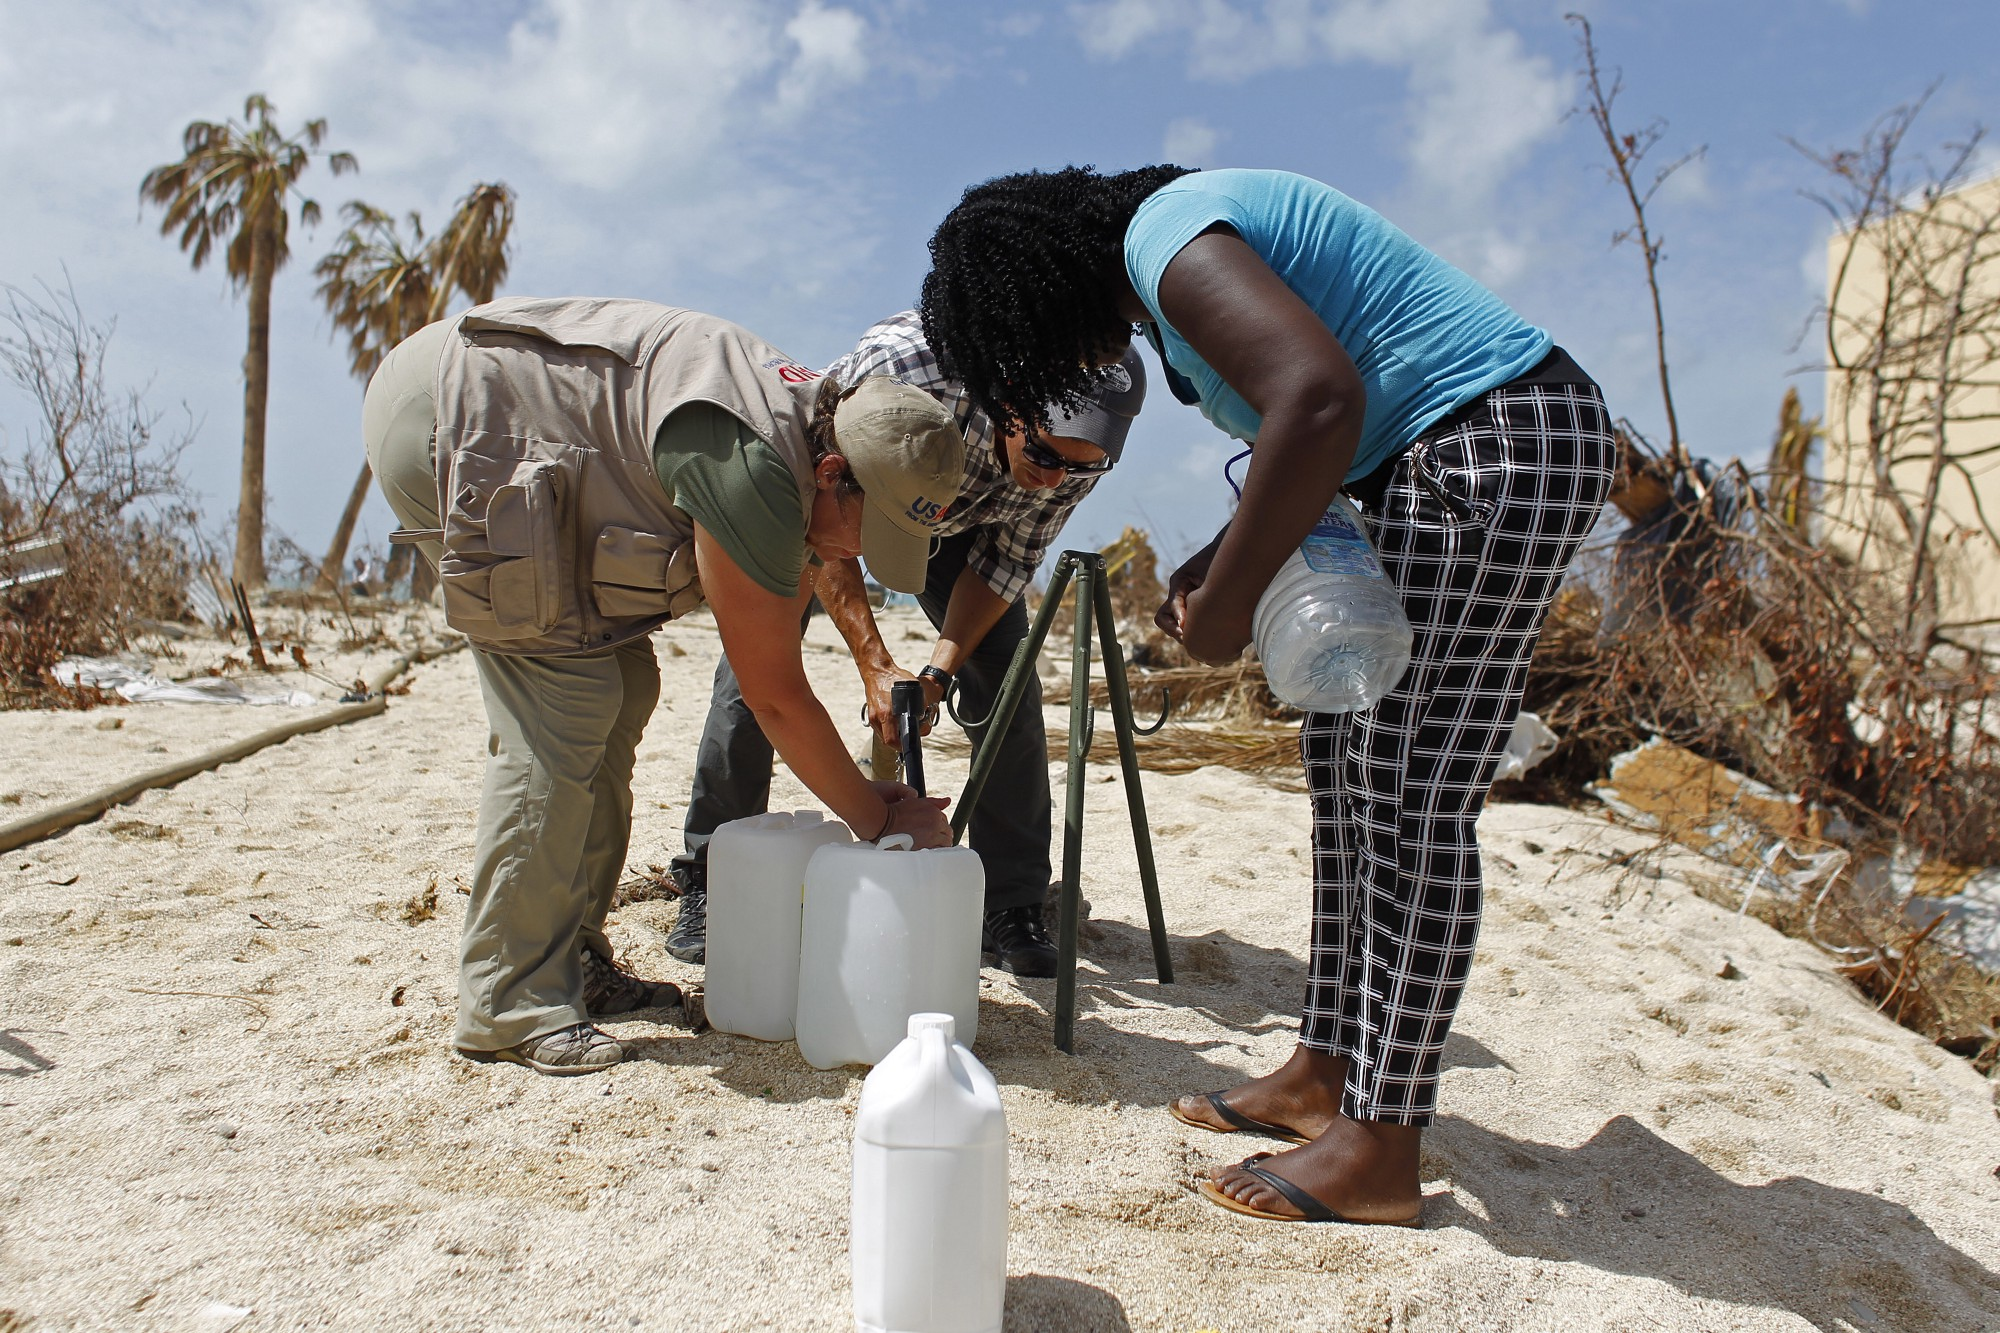 On St. Martin, a member of Joint Task Force-Leeward Islands (center) and DART member Anne Galegor (left) help a local resident to fill a water jug with filtered sea water made potable through a reverse osmosis process. The U.S. military produced a total of 83,020 gallons of potable water for St. Martin during its mission. Photo credit: Ricardo ARDUENGO/AFP